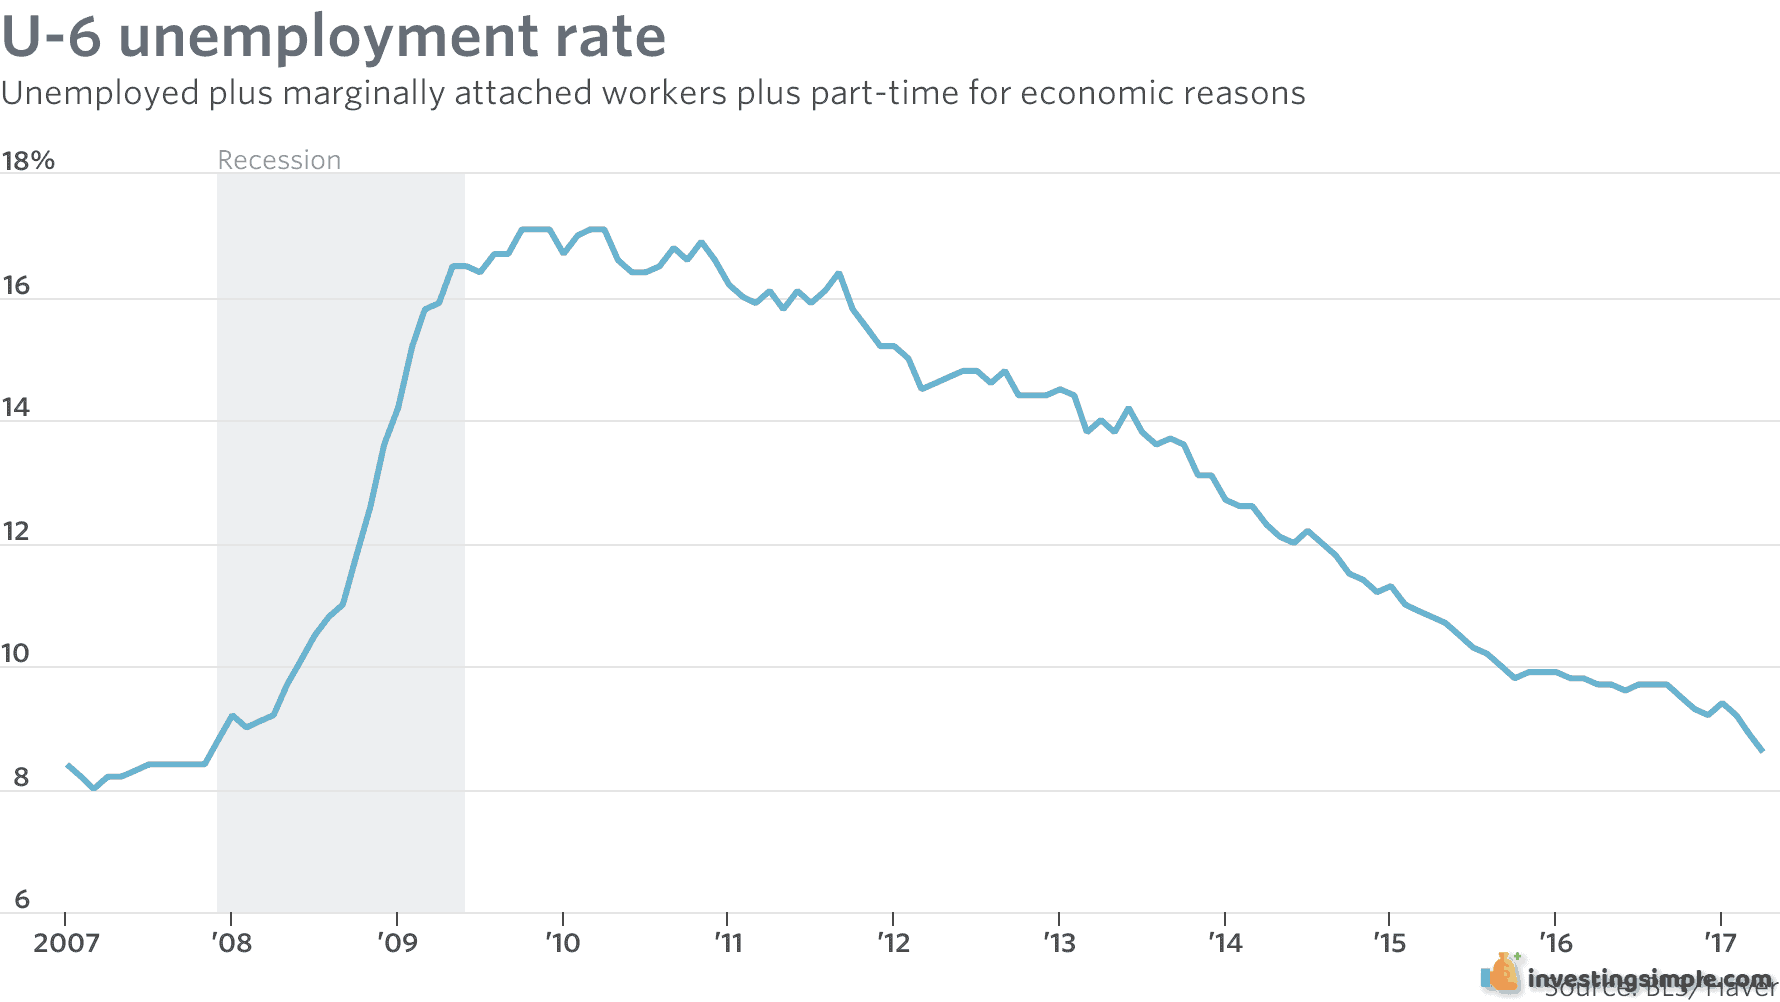 The unemployment rate will also have an impact on the performance of the overall stock market.